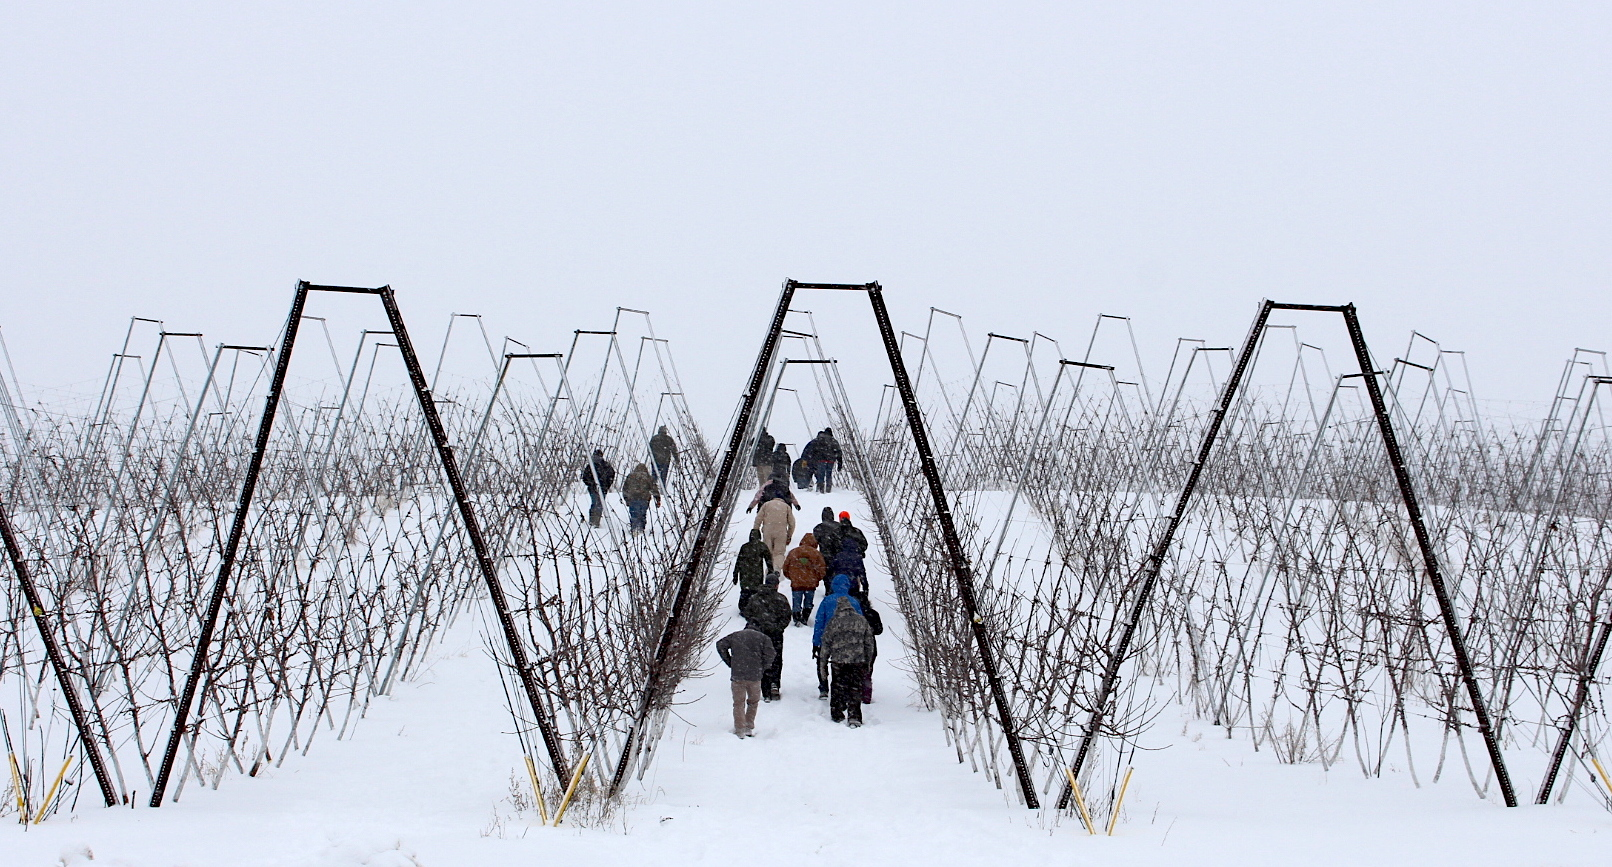 Photo of a brisk walk in a winter orchard